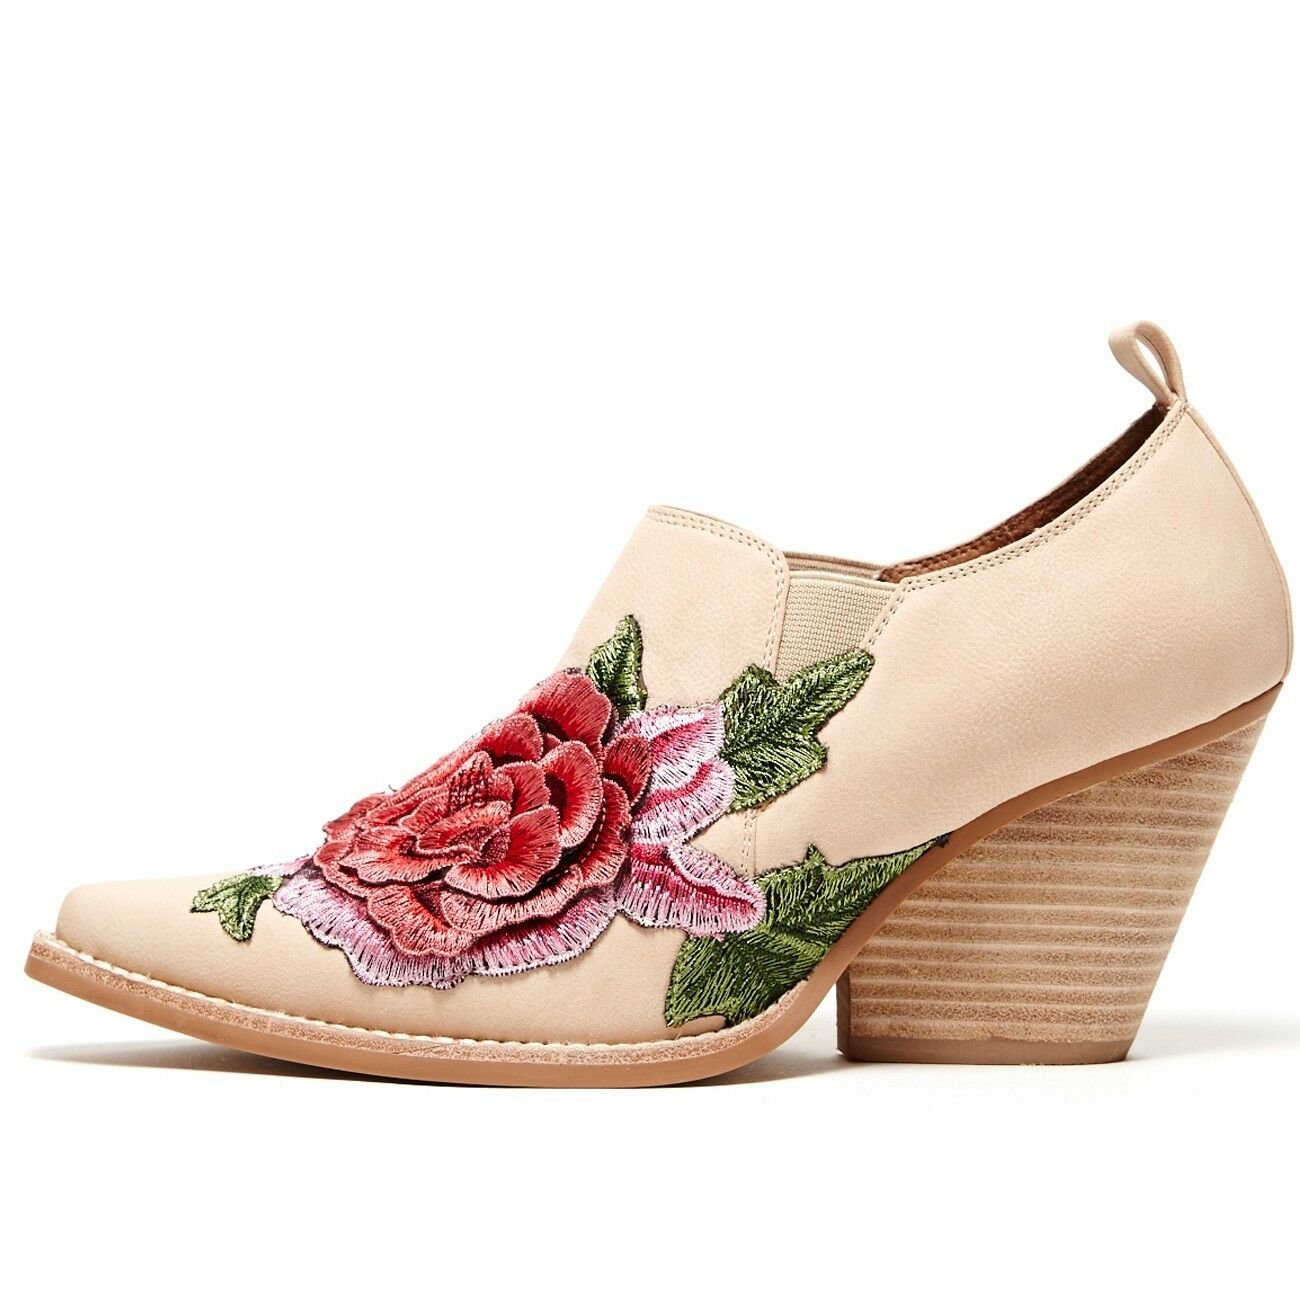 Jeffrey Campbell Free People pinkola pink Ankle Boots Nude Studded Floral Sz 7